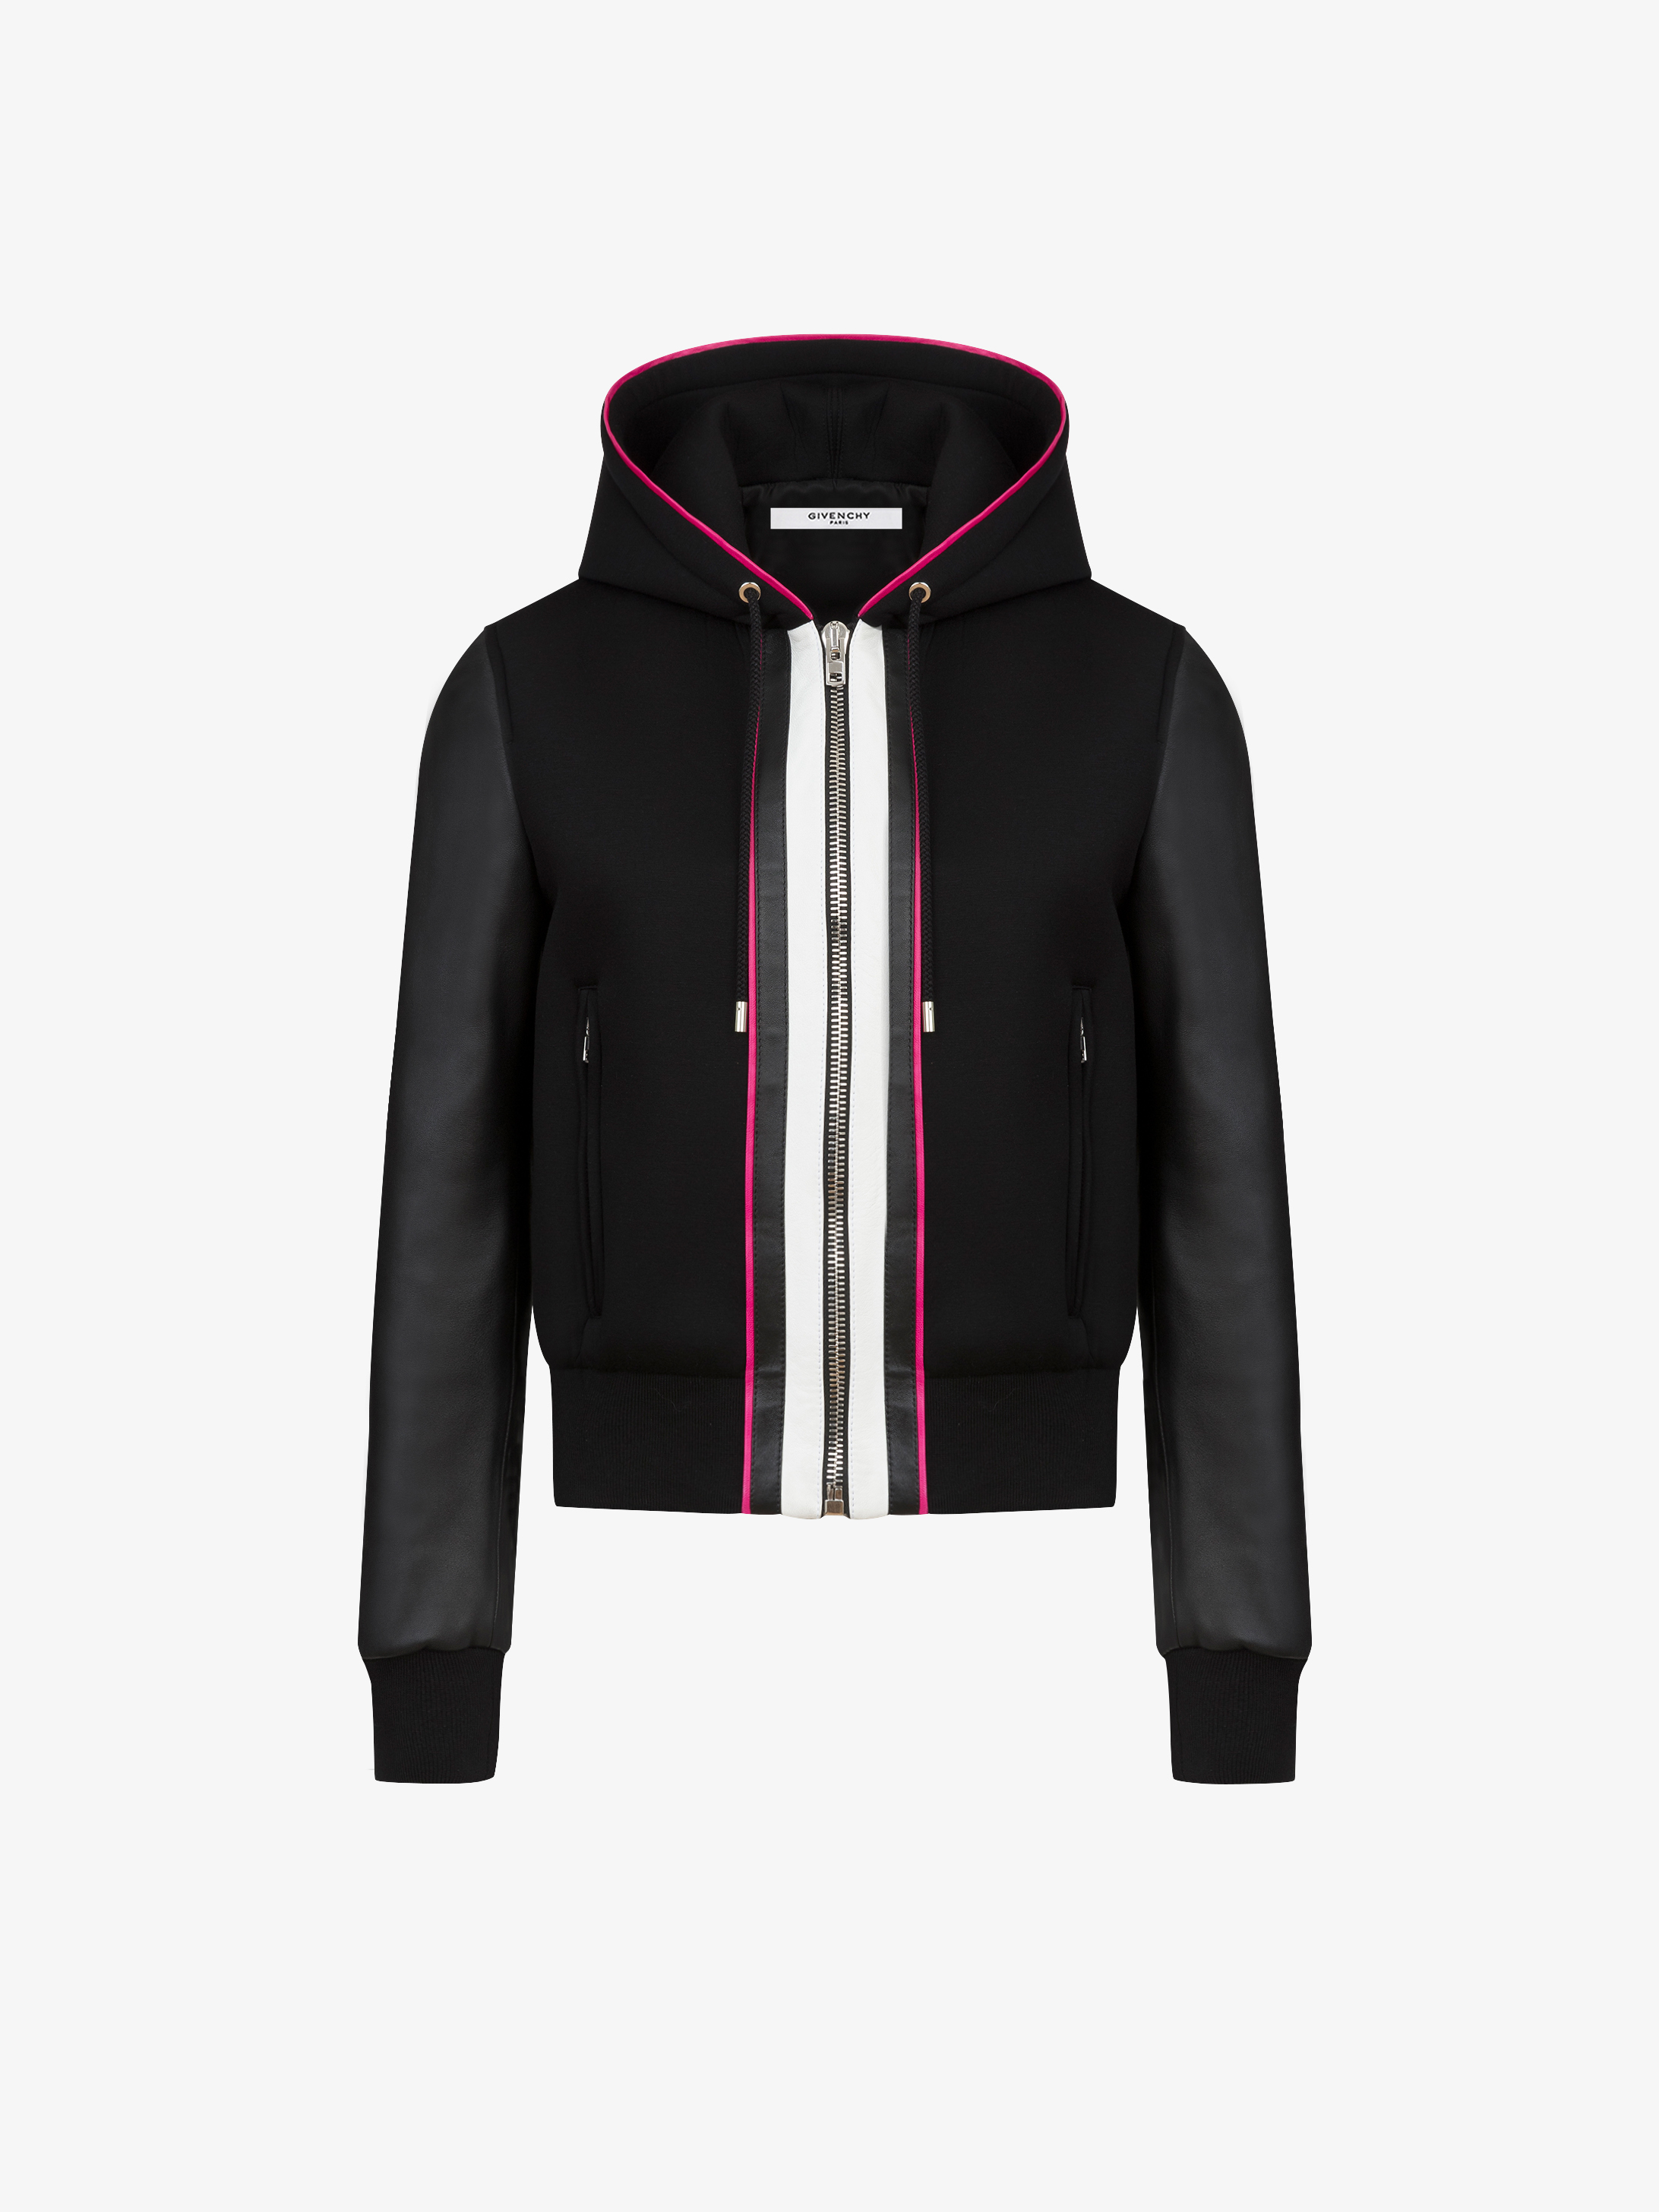 GIVENCHY PARIS logo neoprene and leather bomber jacket | GIVENCHY ...